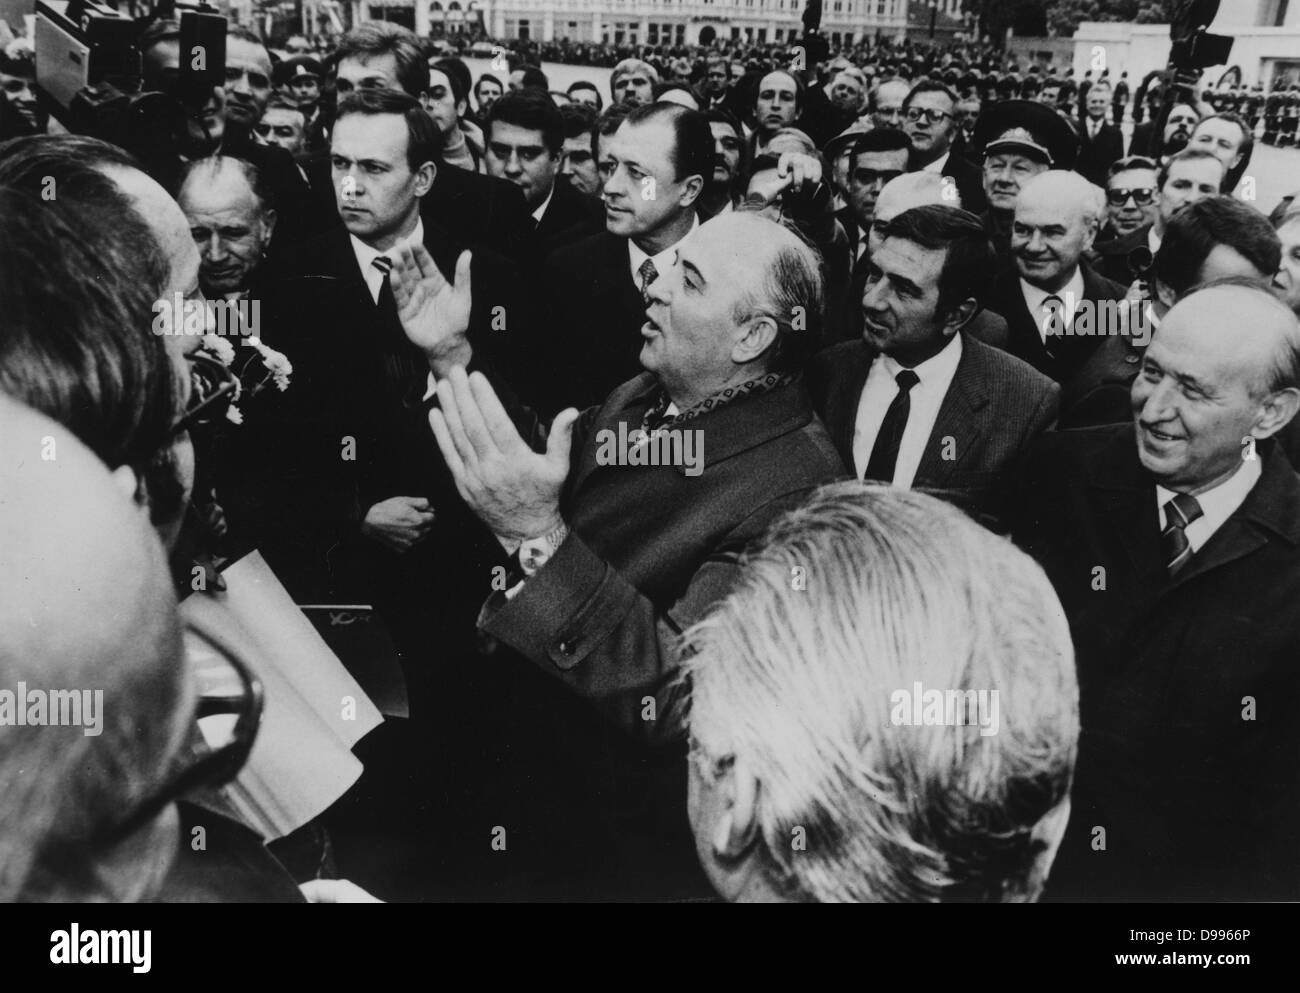 Mikhail Gorbachev taking questions from a crowd on the streets of Moscow. - Stock Image